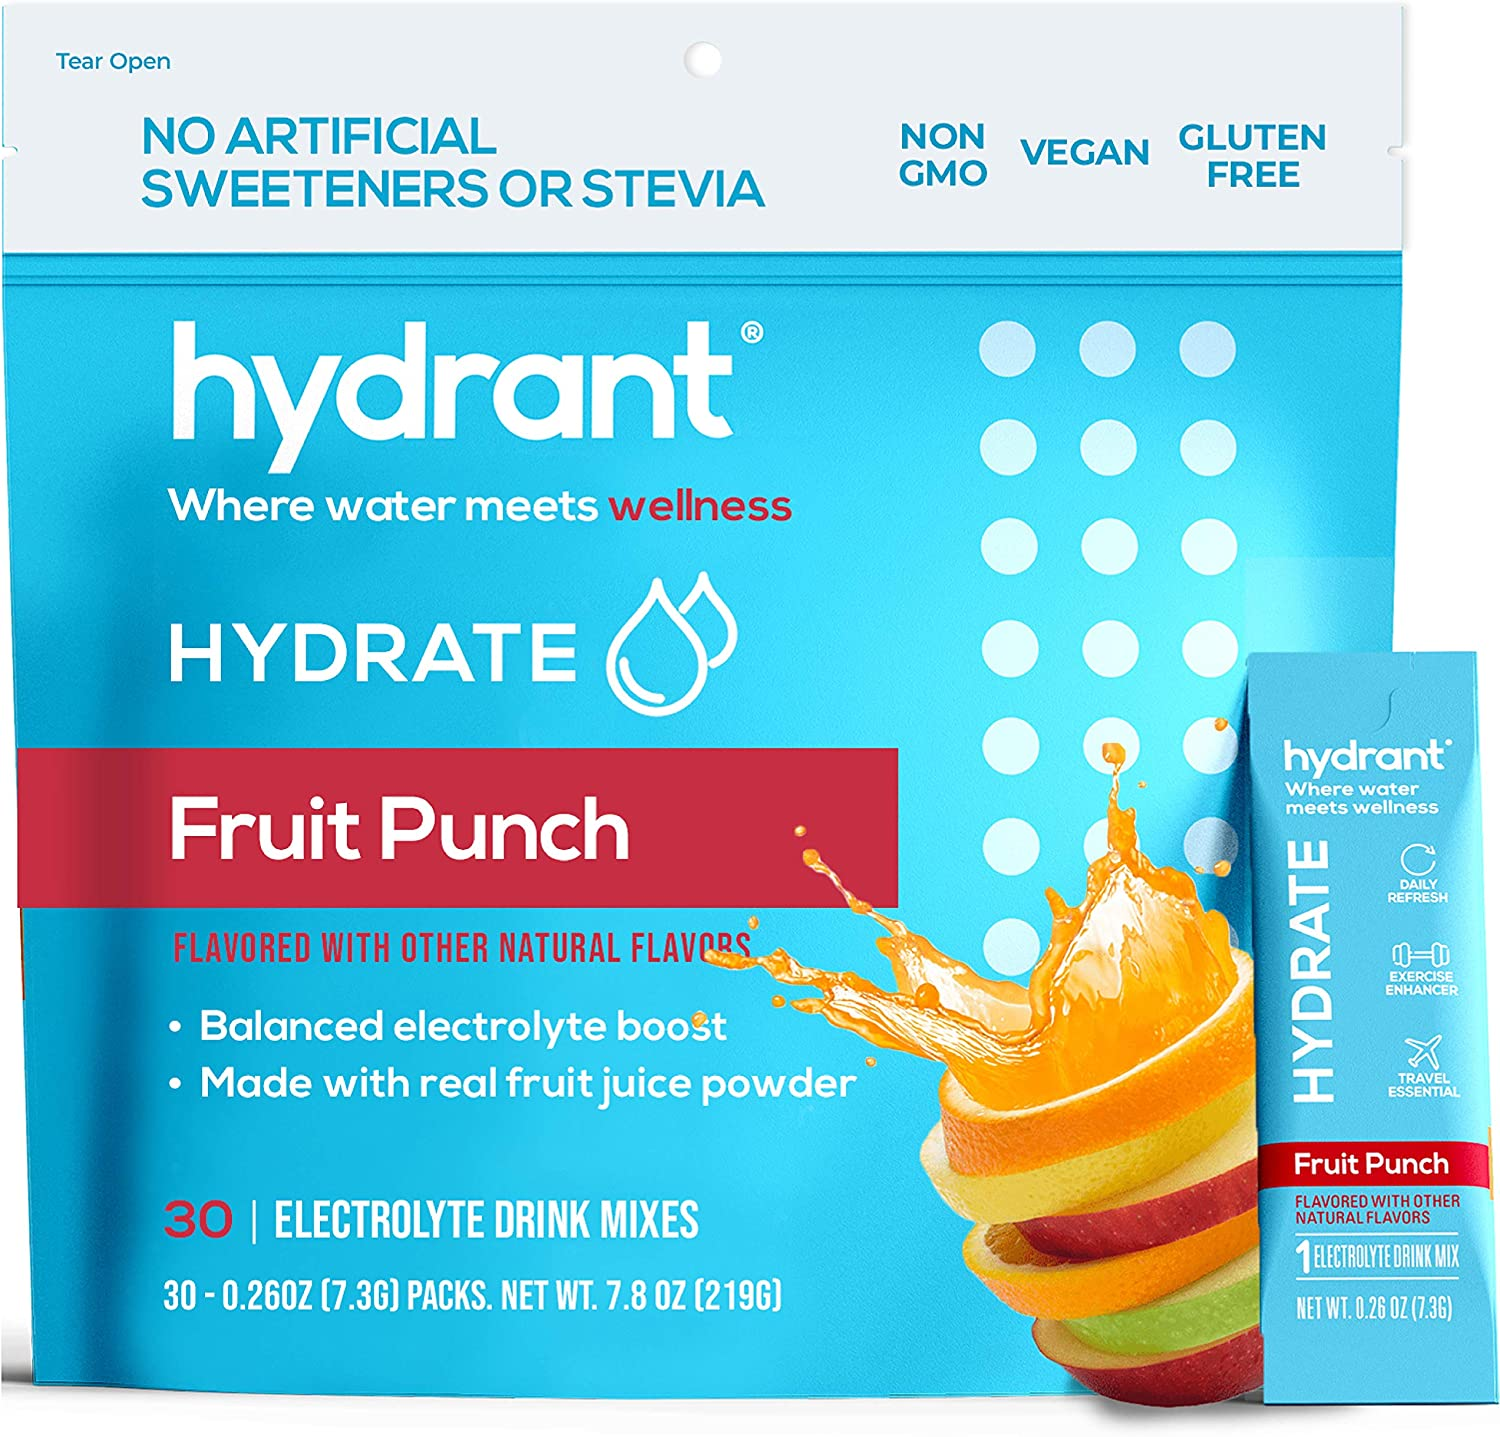 Hydrant Summer Hydrate Fruit Punch (30 Stick Packs) Electrolyte Powder Rapid Hydration Mix, Hydration Powder Packets Drink Mix, Helps Rehydrate Better Than Water